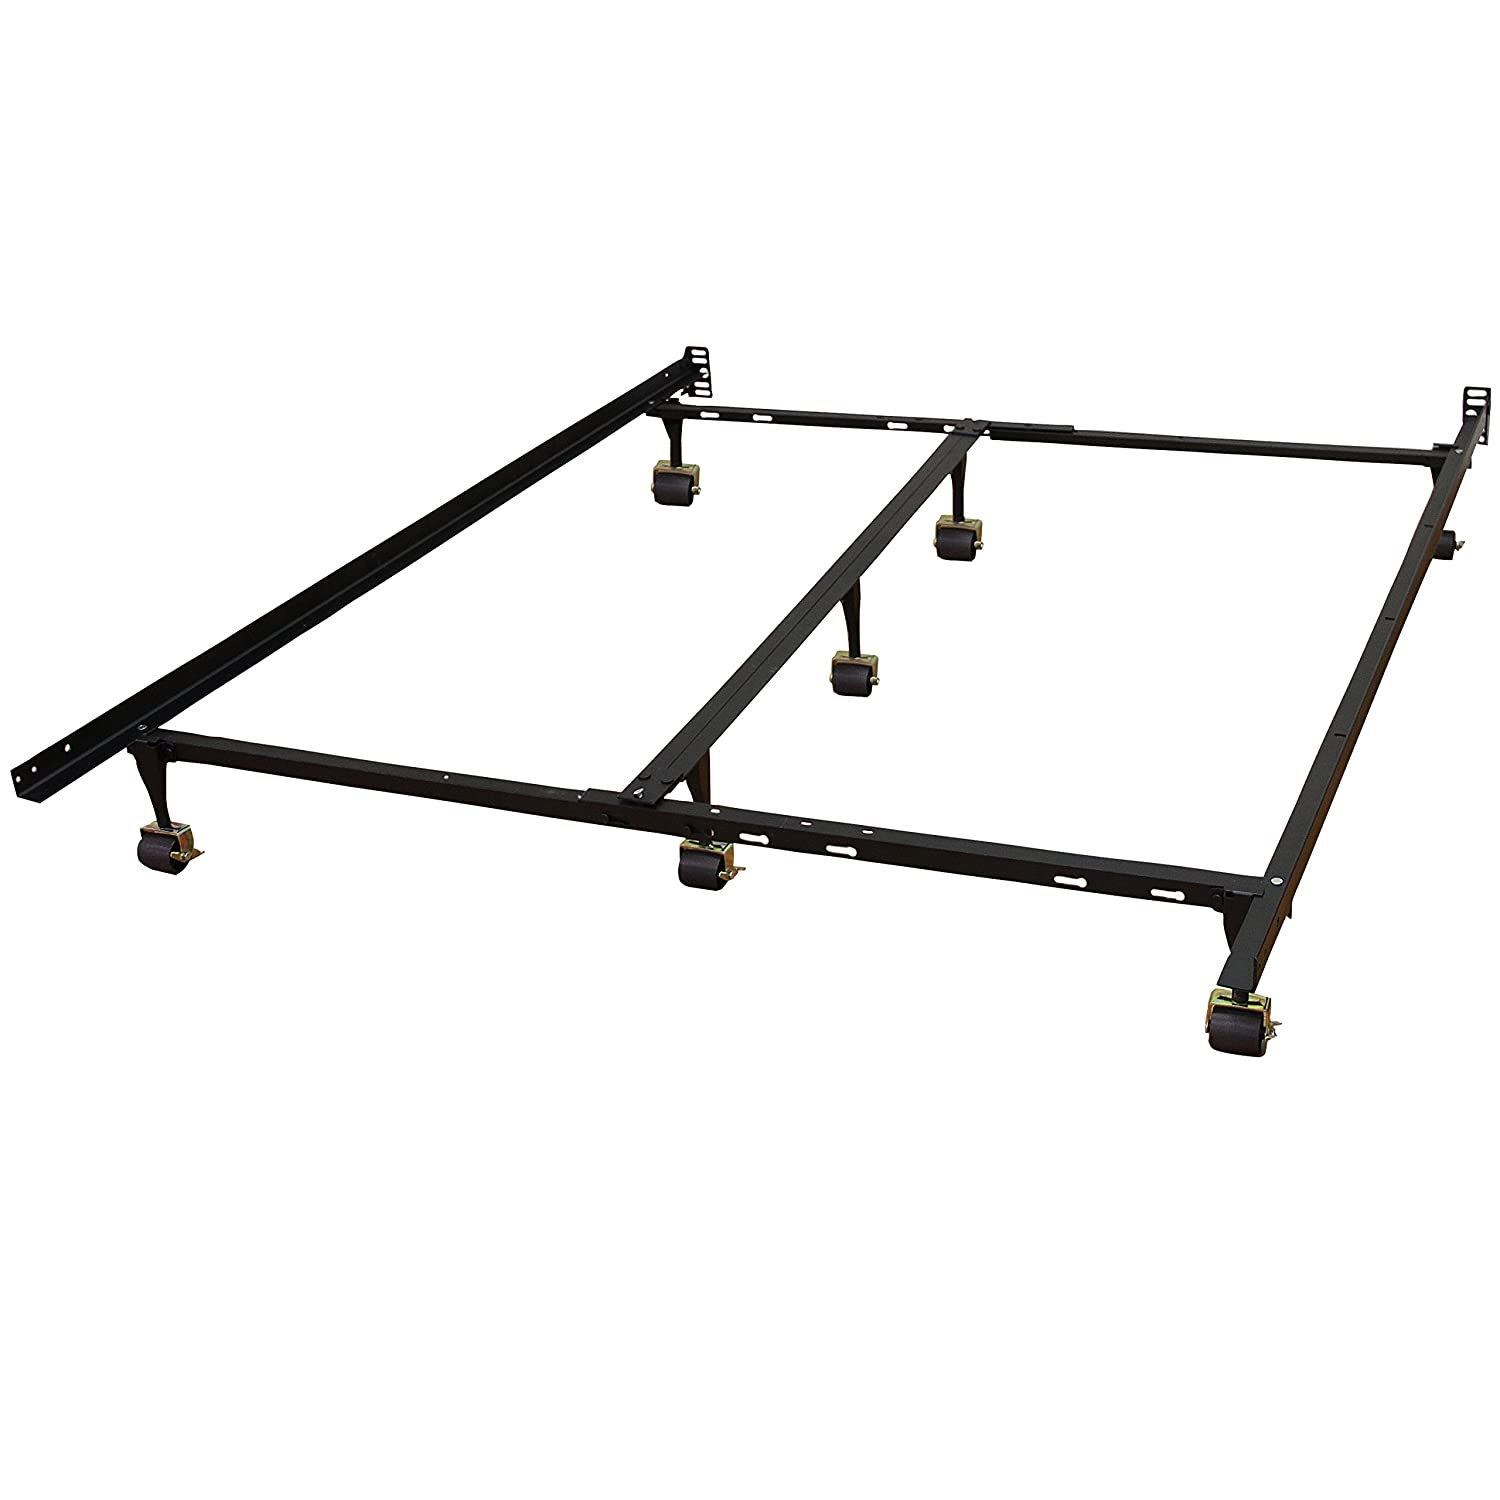 classic brands hercules universal heavy duty metal bed frame adjustable width fits twin twin xl full queen king california king - Queen Bed And Frame